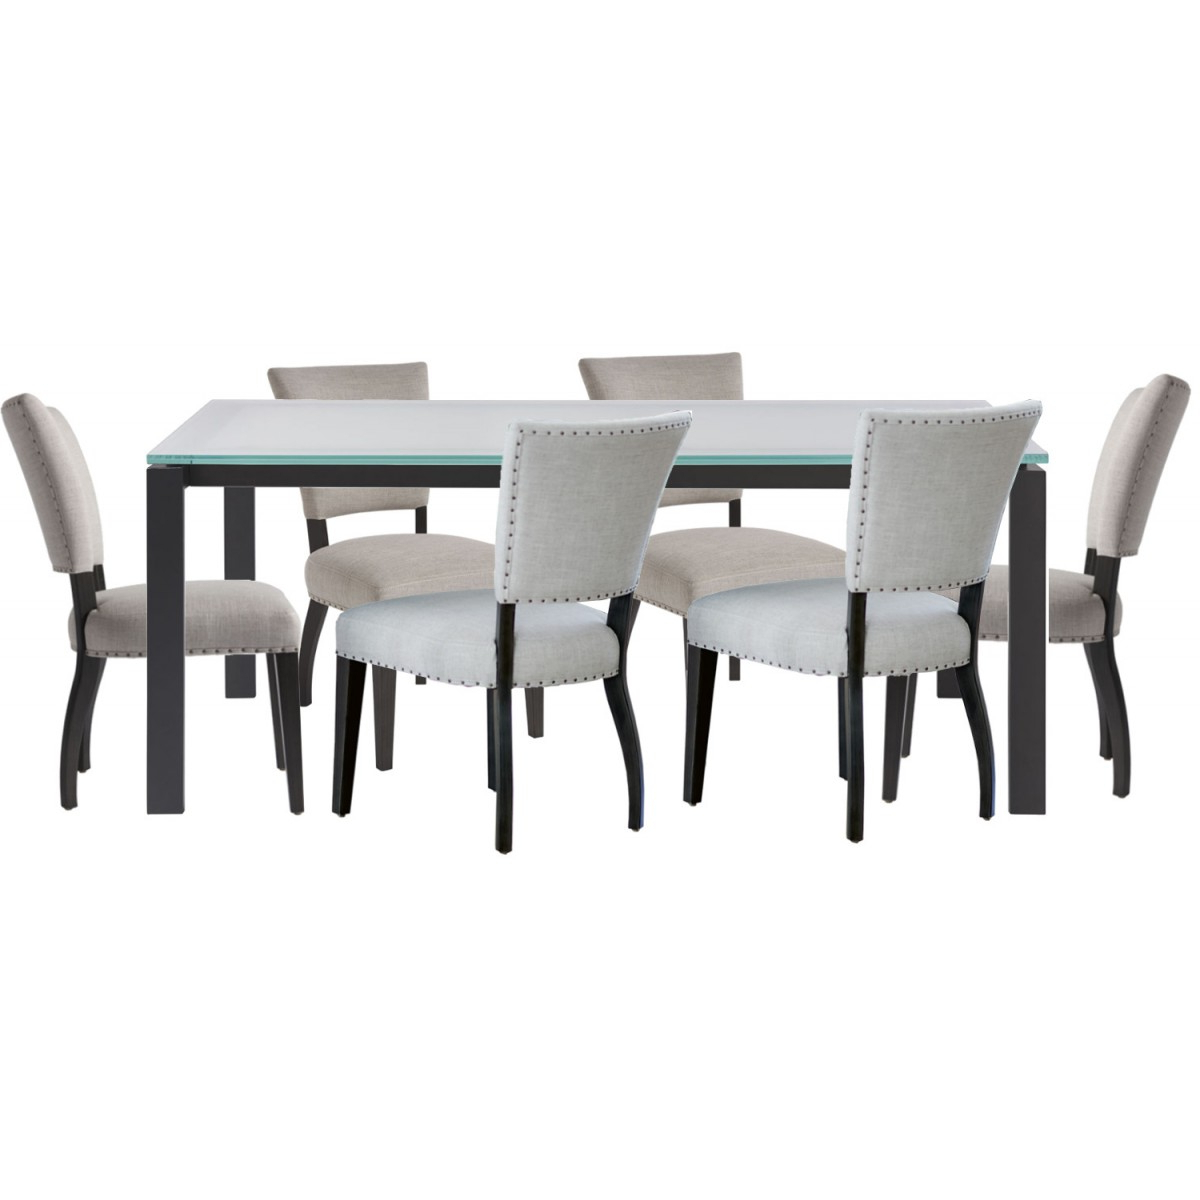 Universal Furniture Spaces Hamilton 7Pc Dining Table Set  Frosted Glass  Top#732 With Regard To Madison Park Rachel Grey Media Credenzas (View 19 of 20)